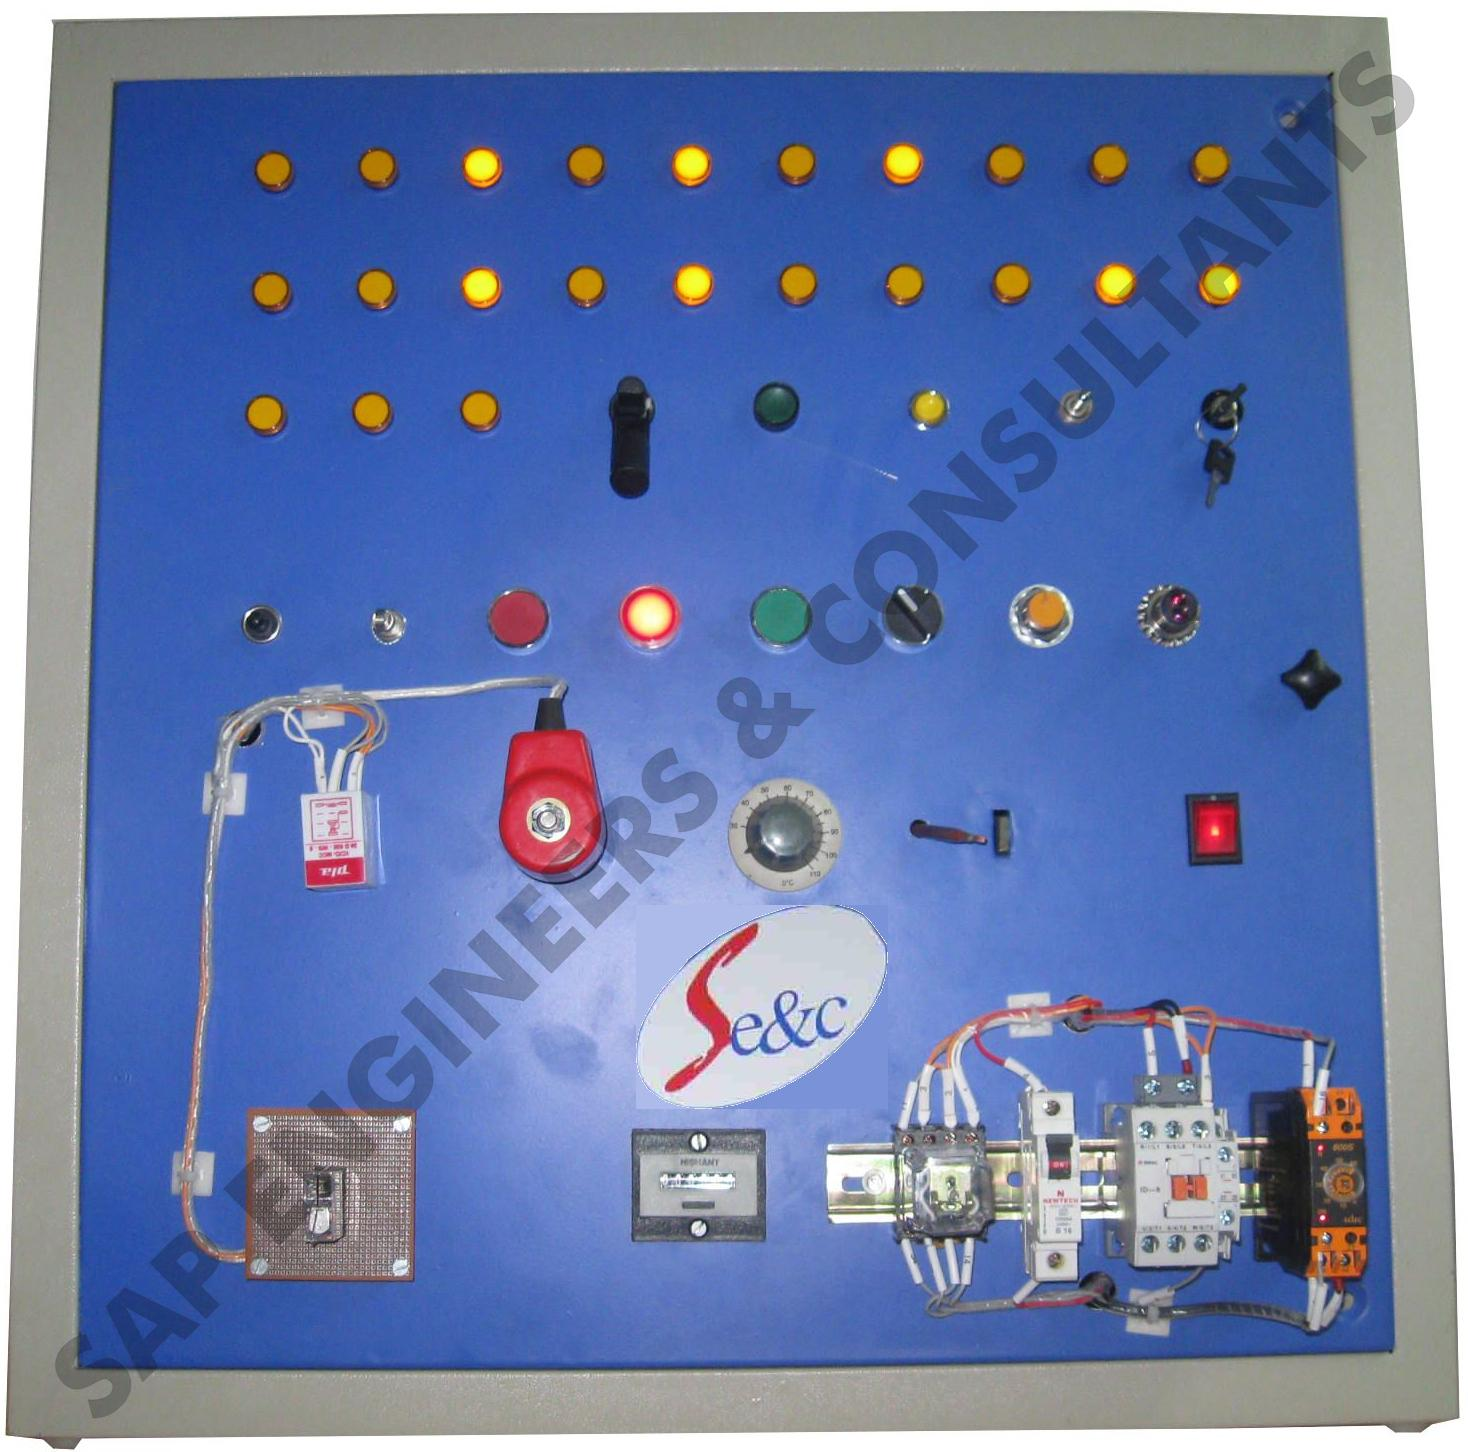 Switches & Relays Trainer